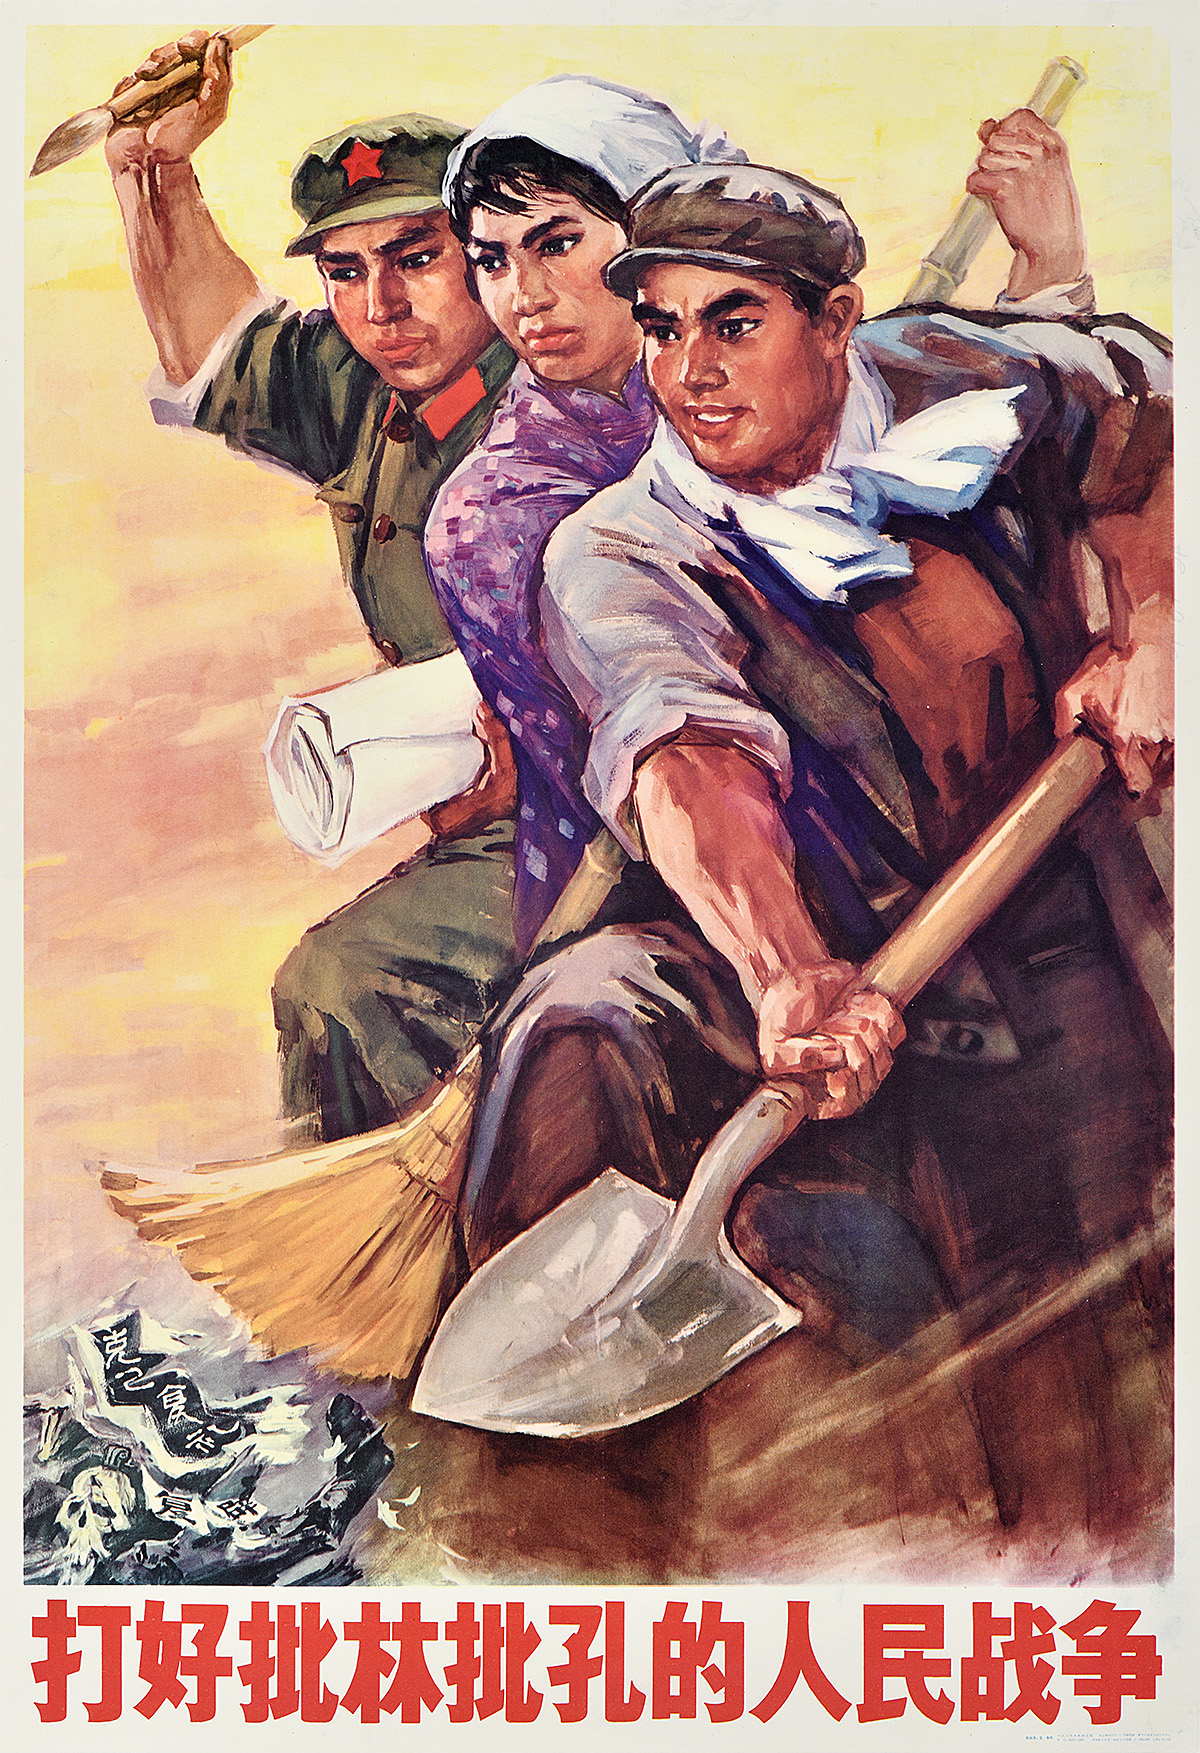 illustrational poster of three Chinese people armed with different tools